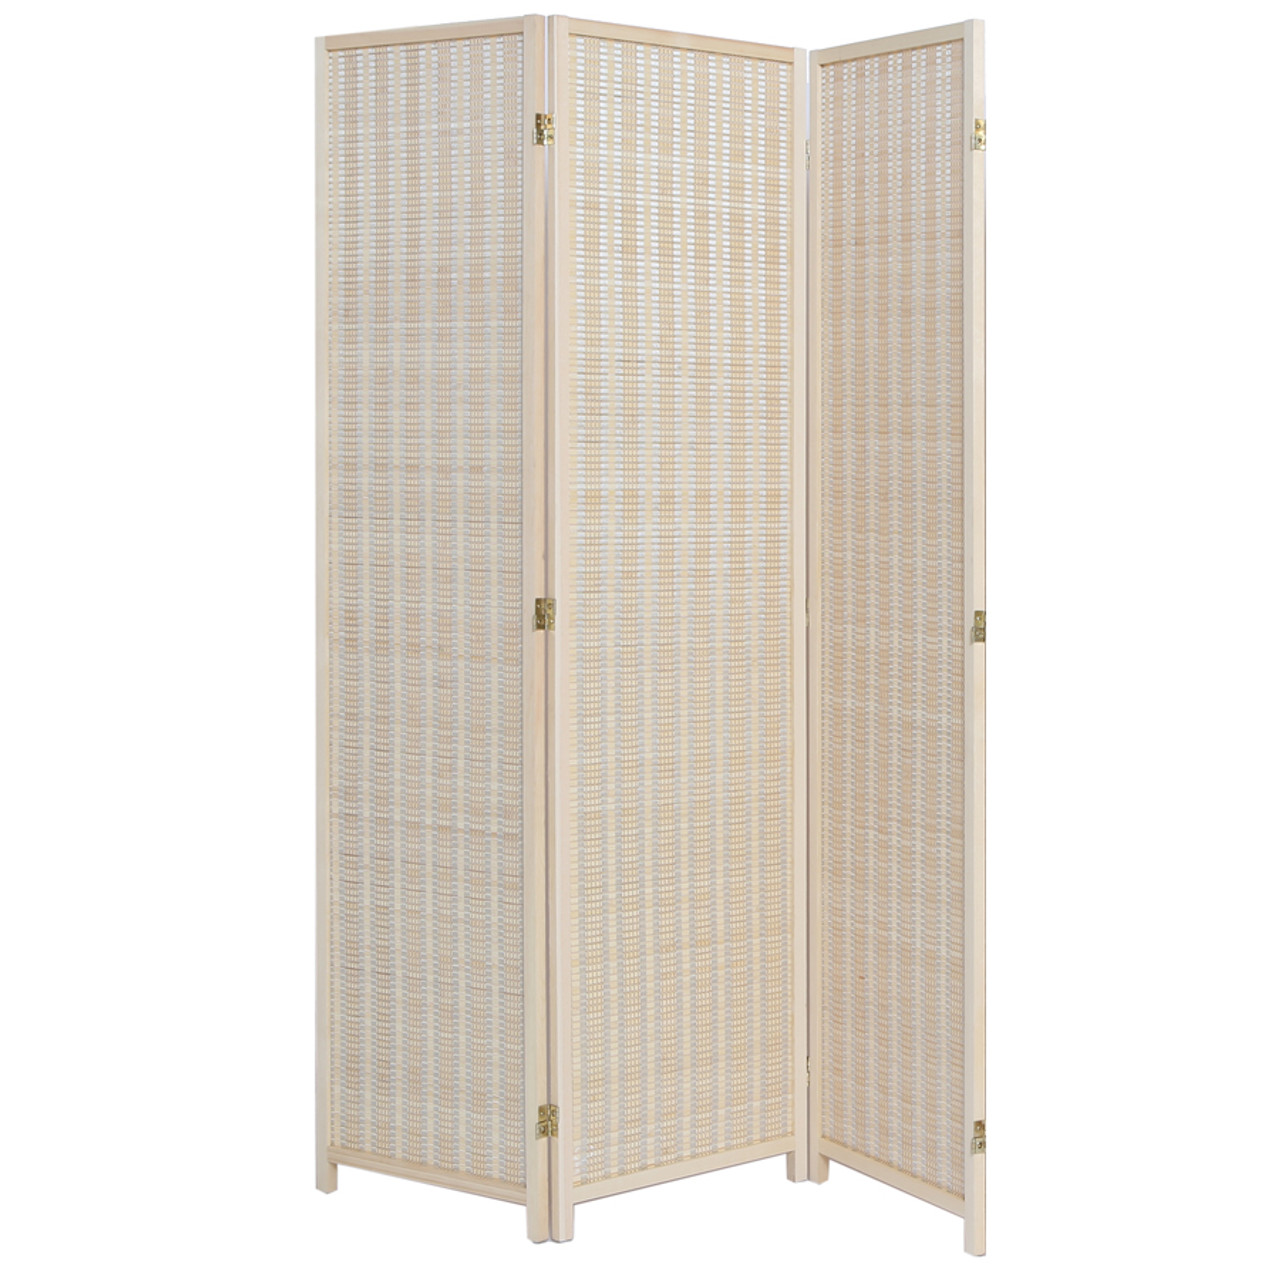 3 Panel Natural, Brown, or Black Color Wood and Bamboo Weave Room Divider